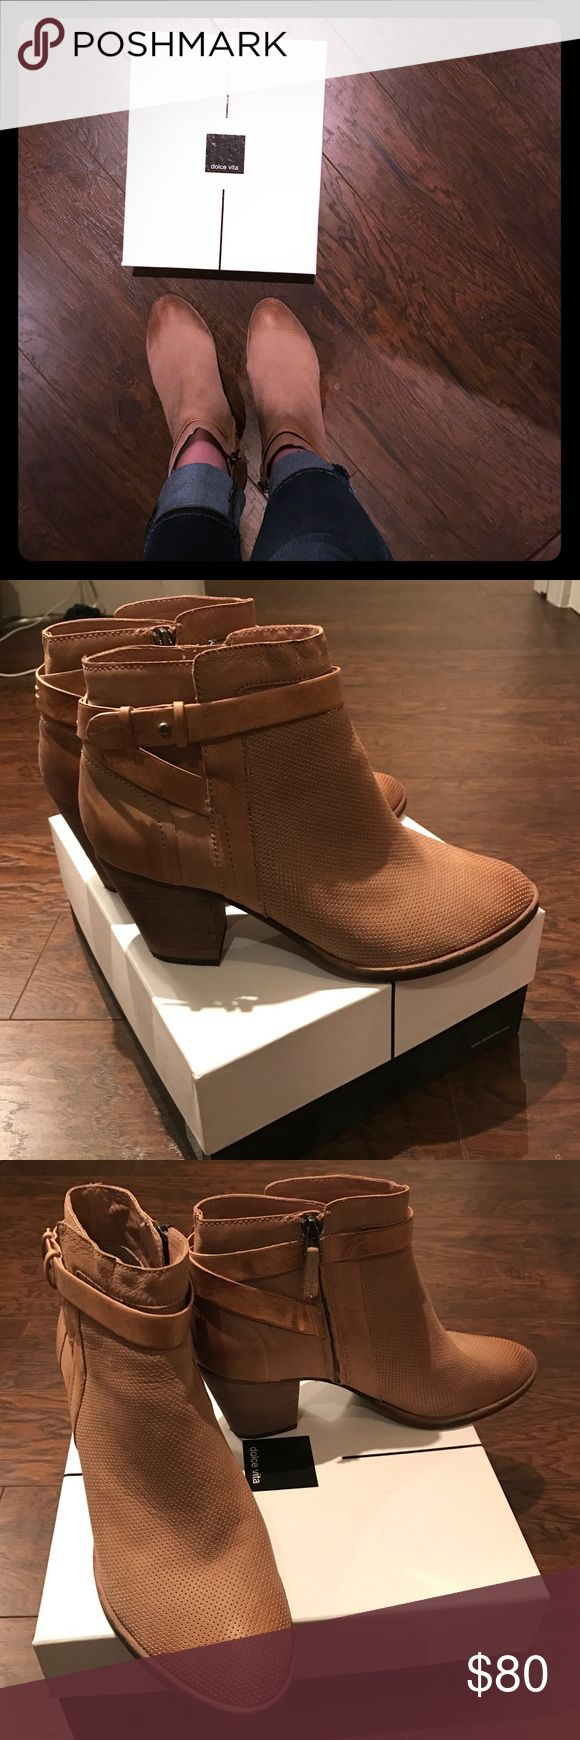 Dolce Vita ankle booties Dolce Vita tan leather ankle booties. Very comfy & in great condition! 🌟REDUCED 🌟 Dolce Vita Shoes Ankle Boots & Booties